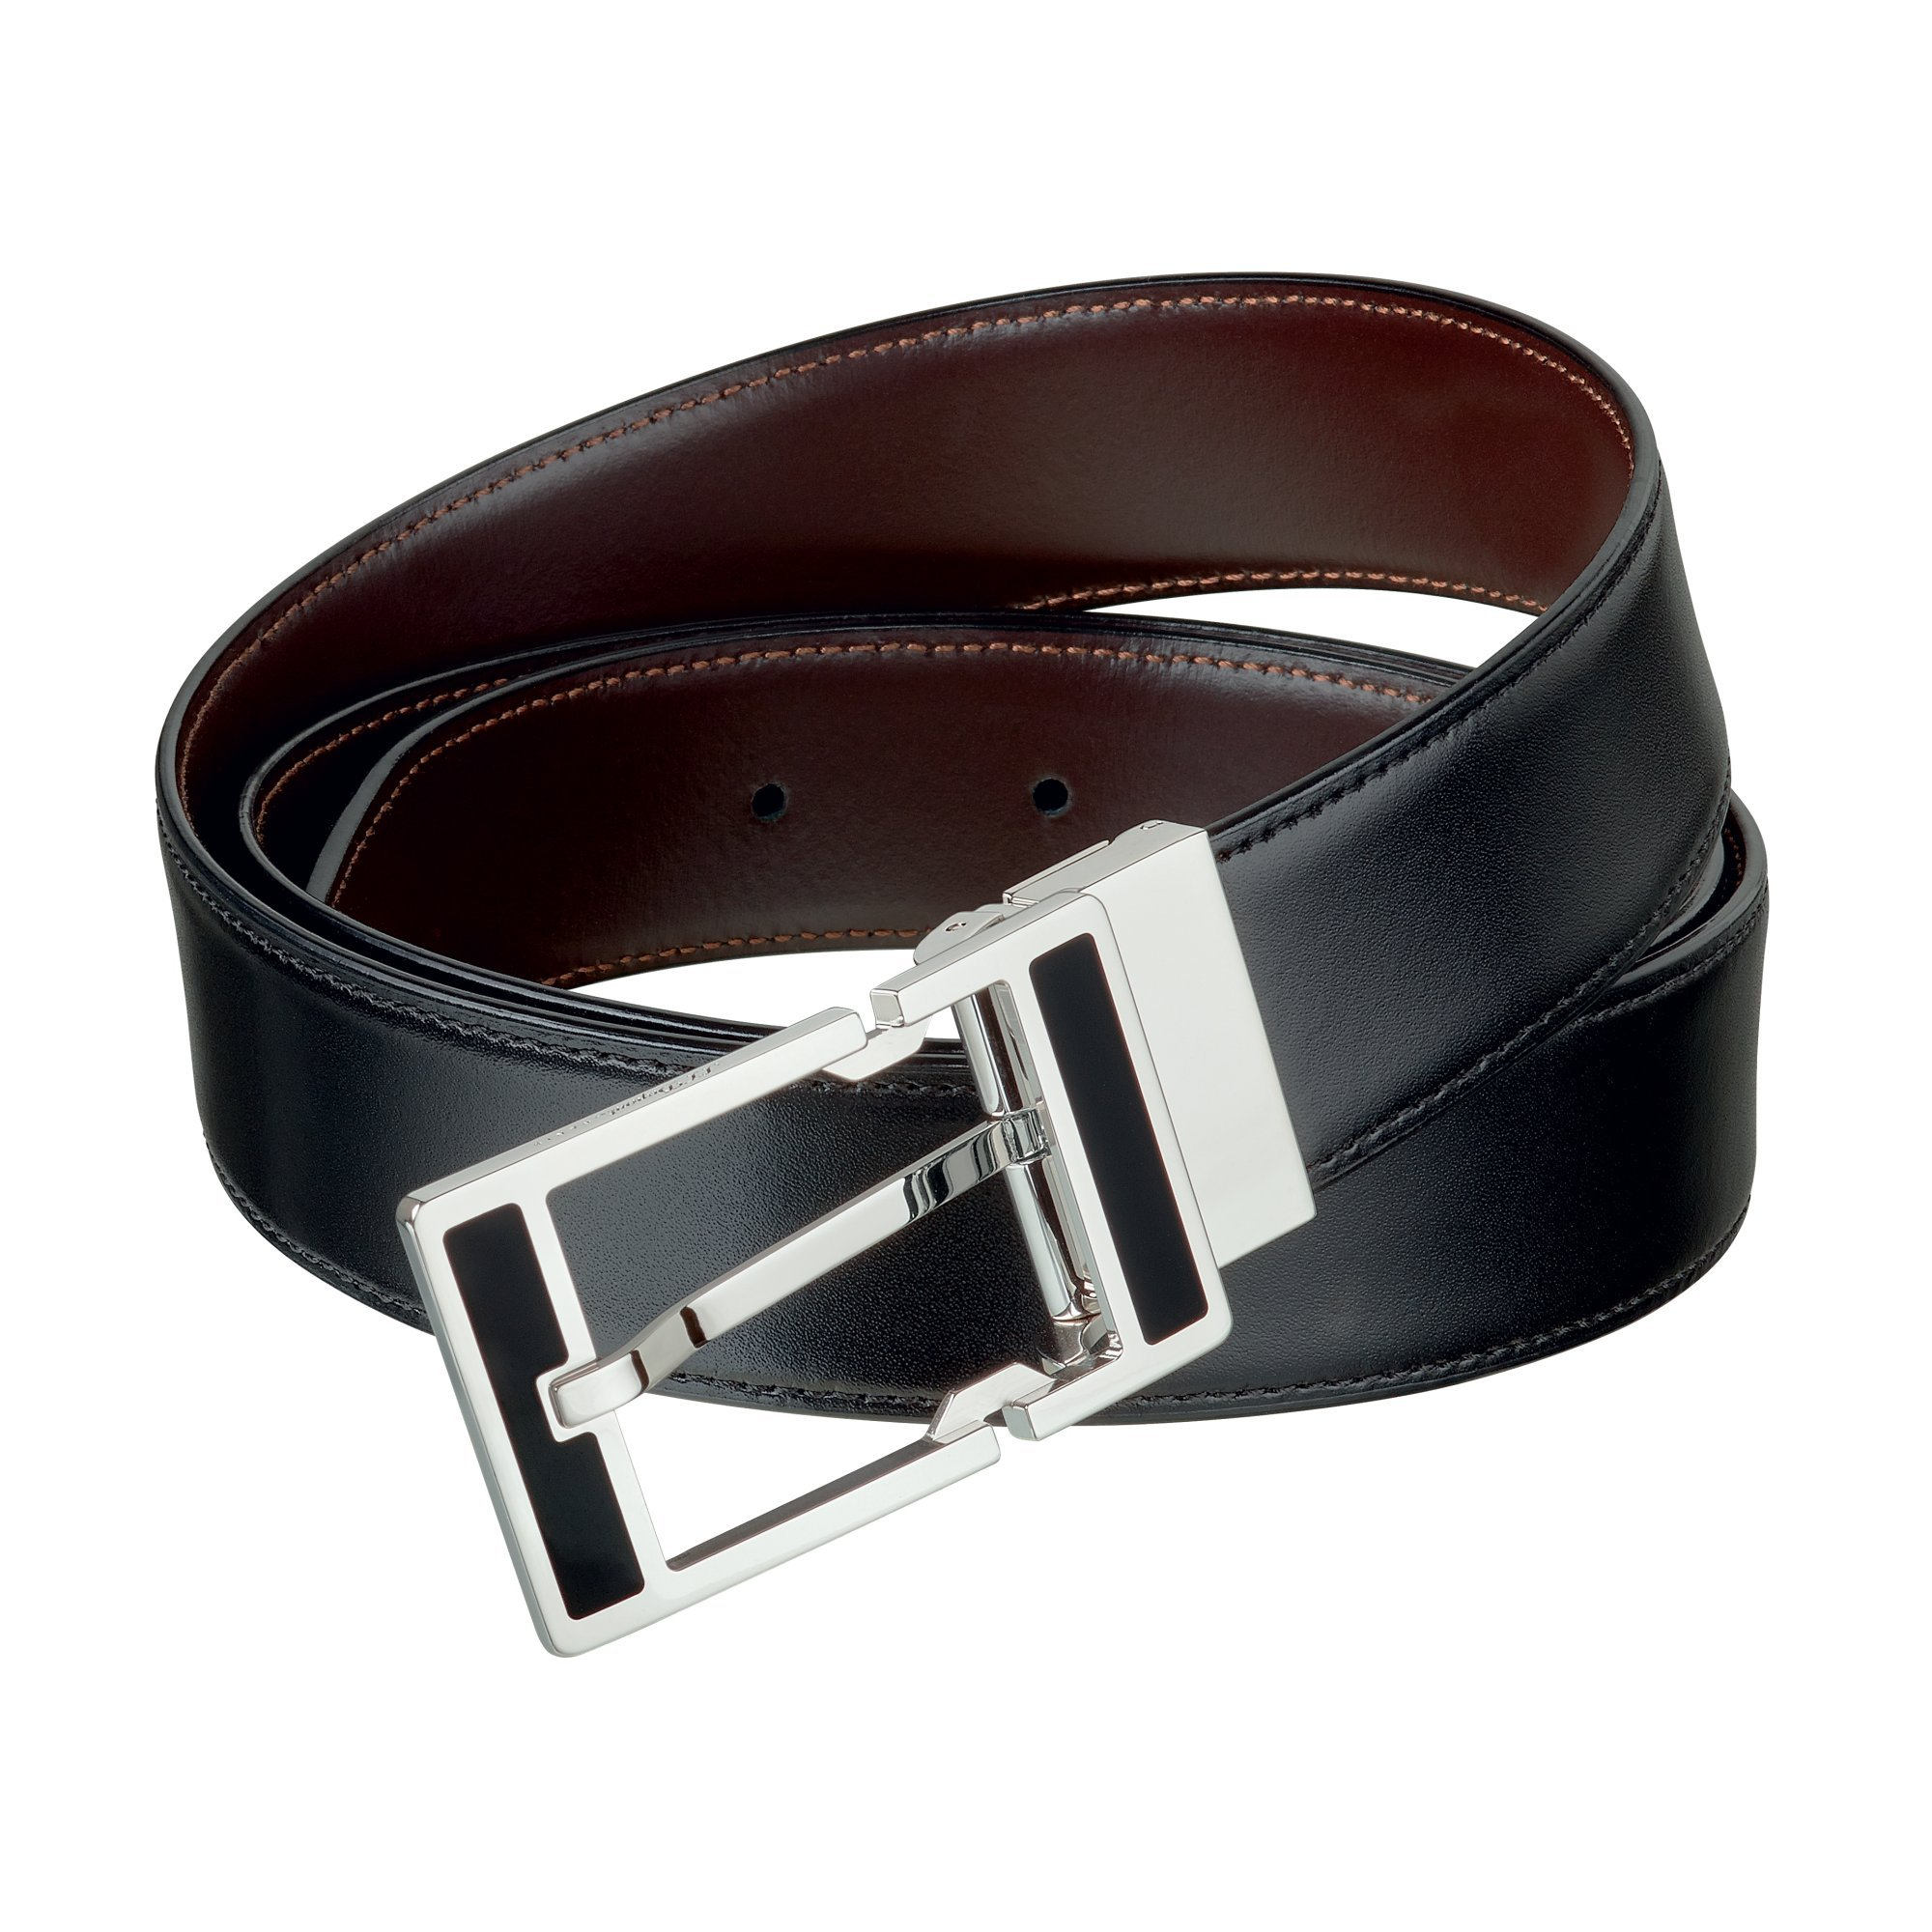 S.T. Dupont 9500120 Palladium Auto-Reversible Buckle Business Belt